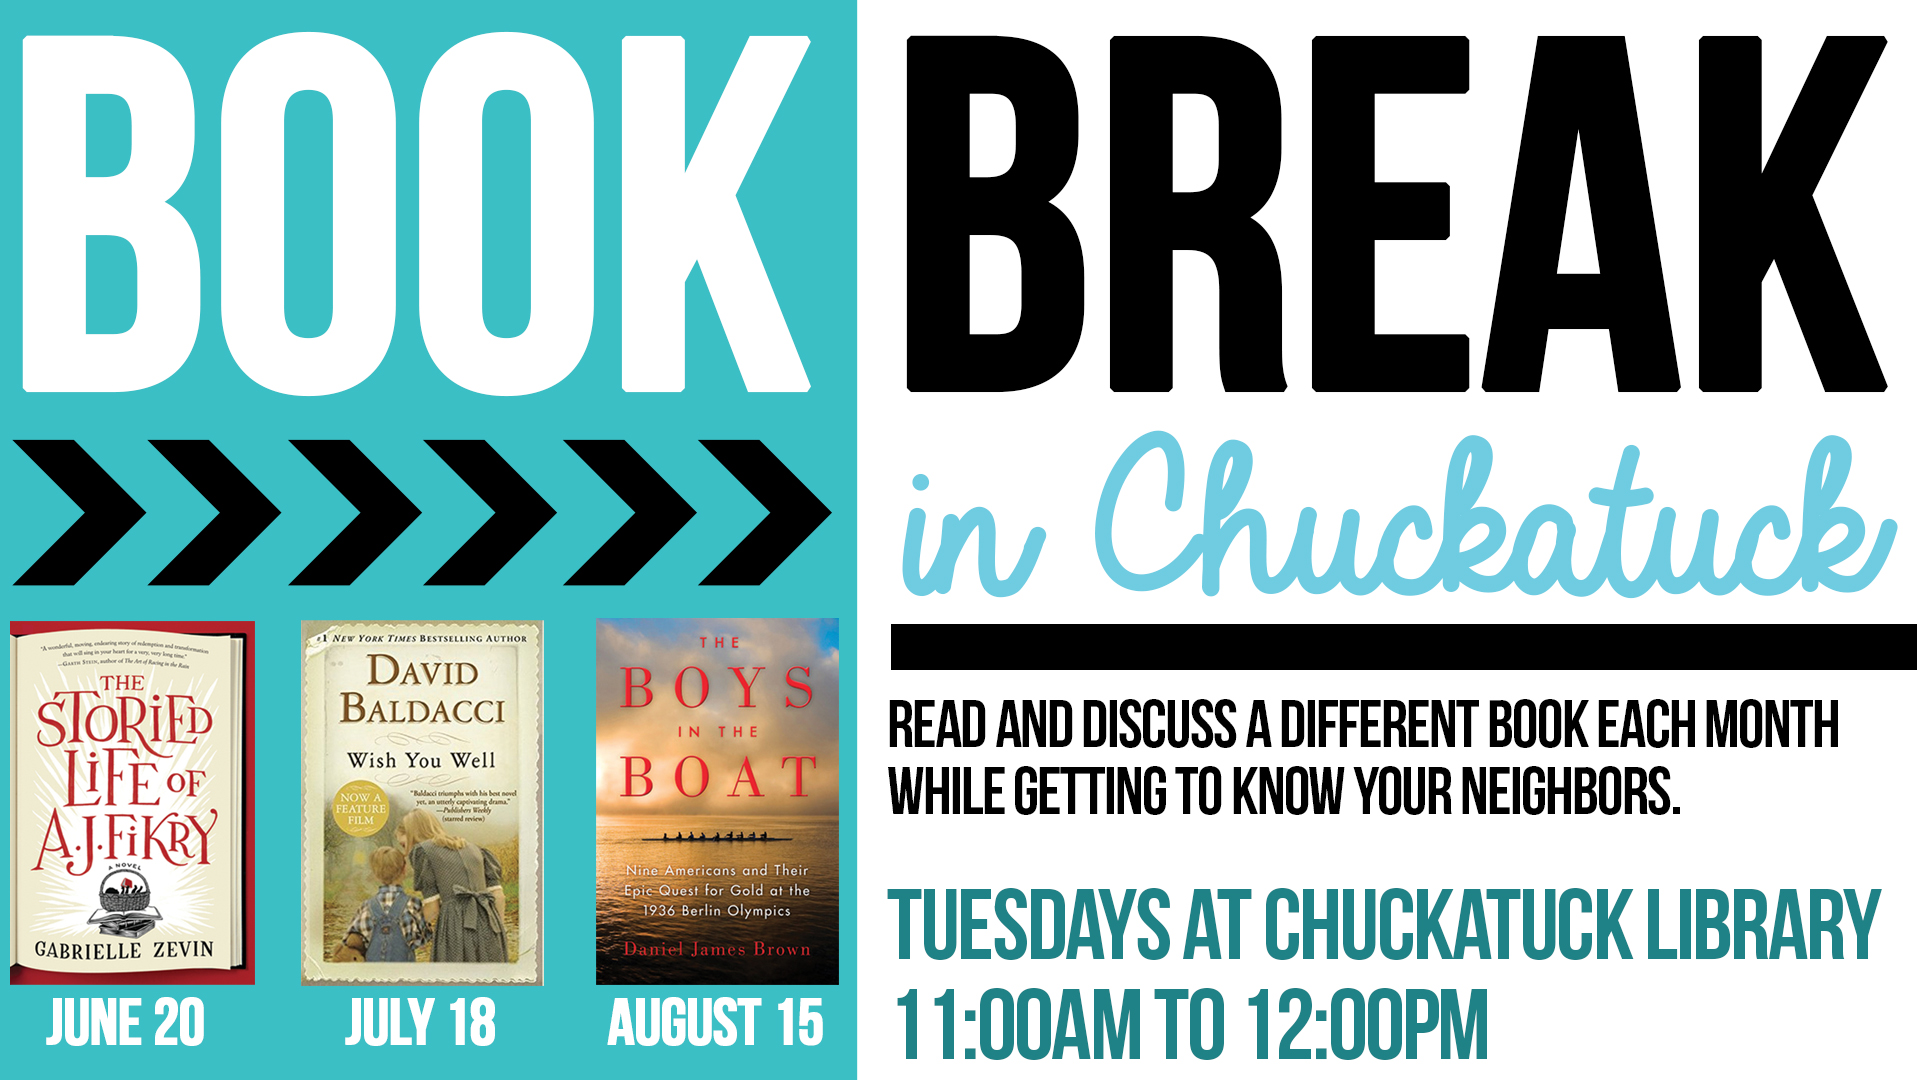 Book Break in Chuckatuck: The Boys in the Boat by Daniel Brown